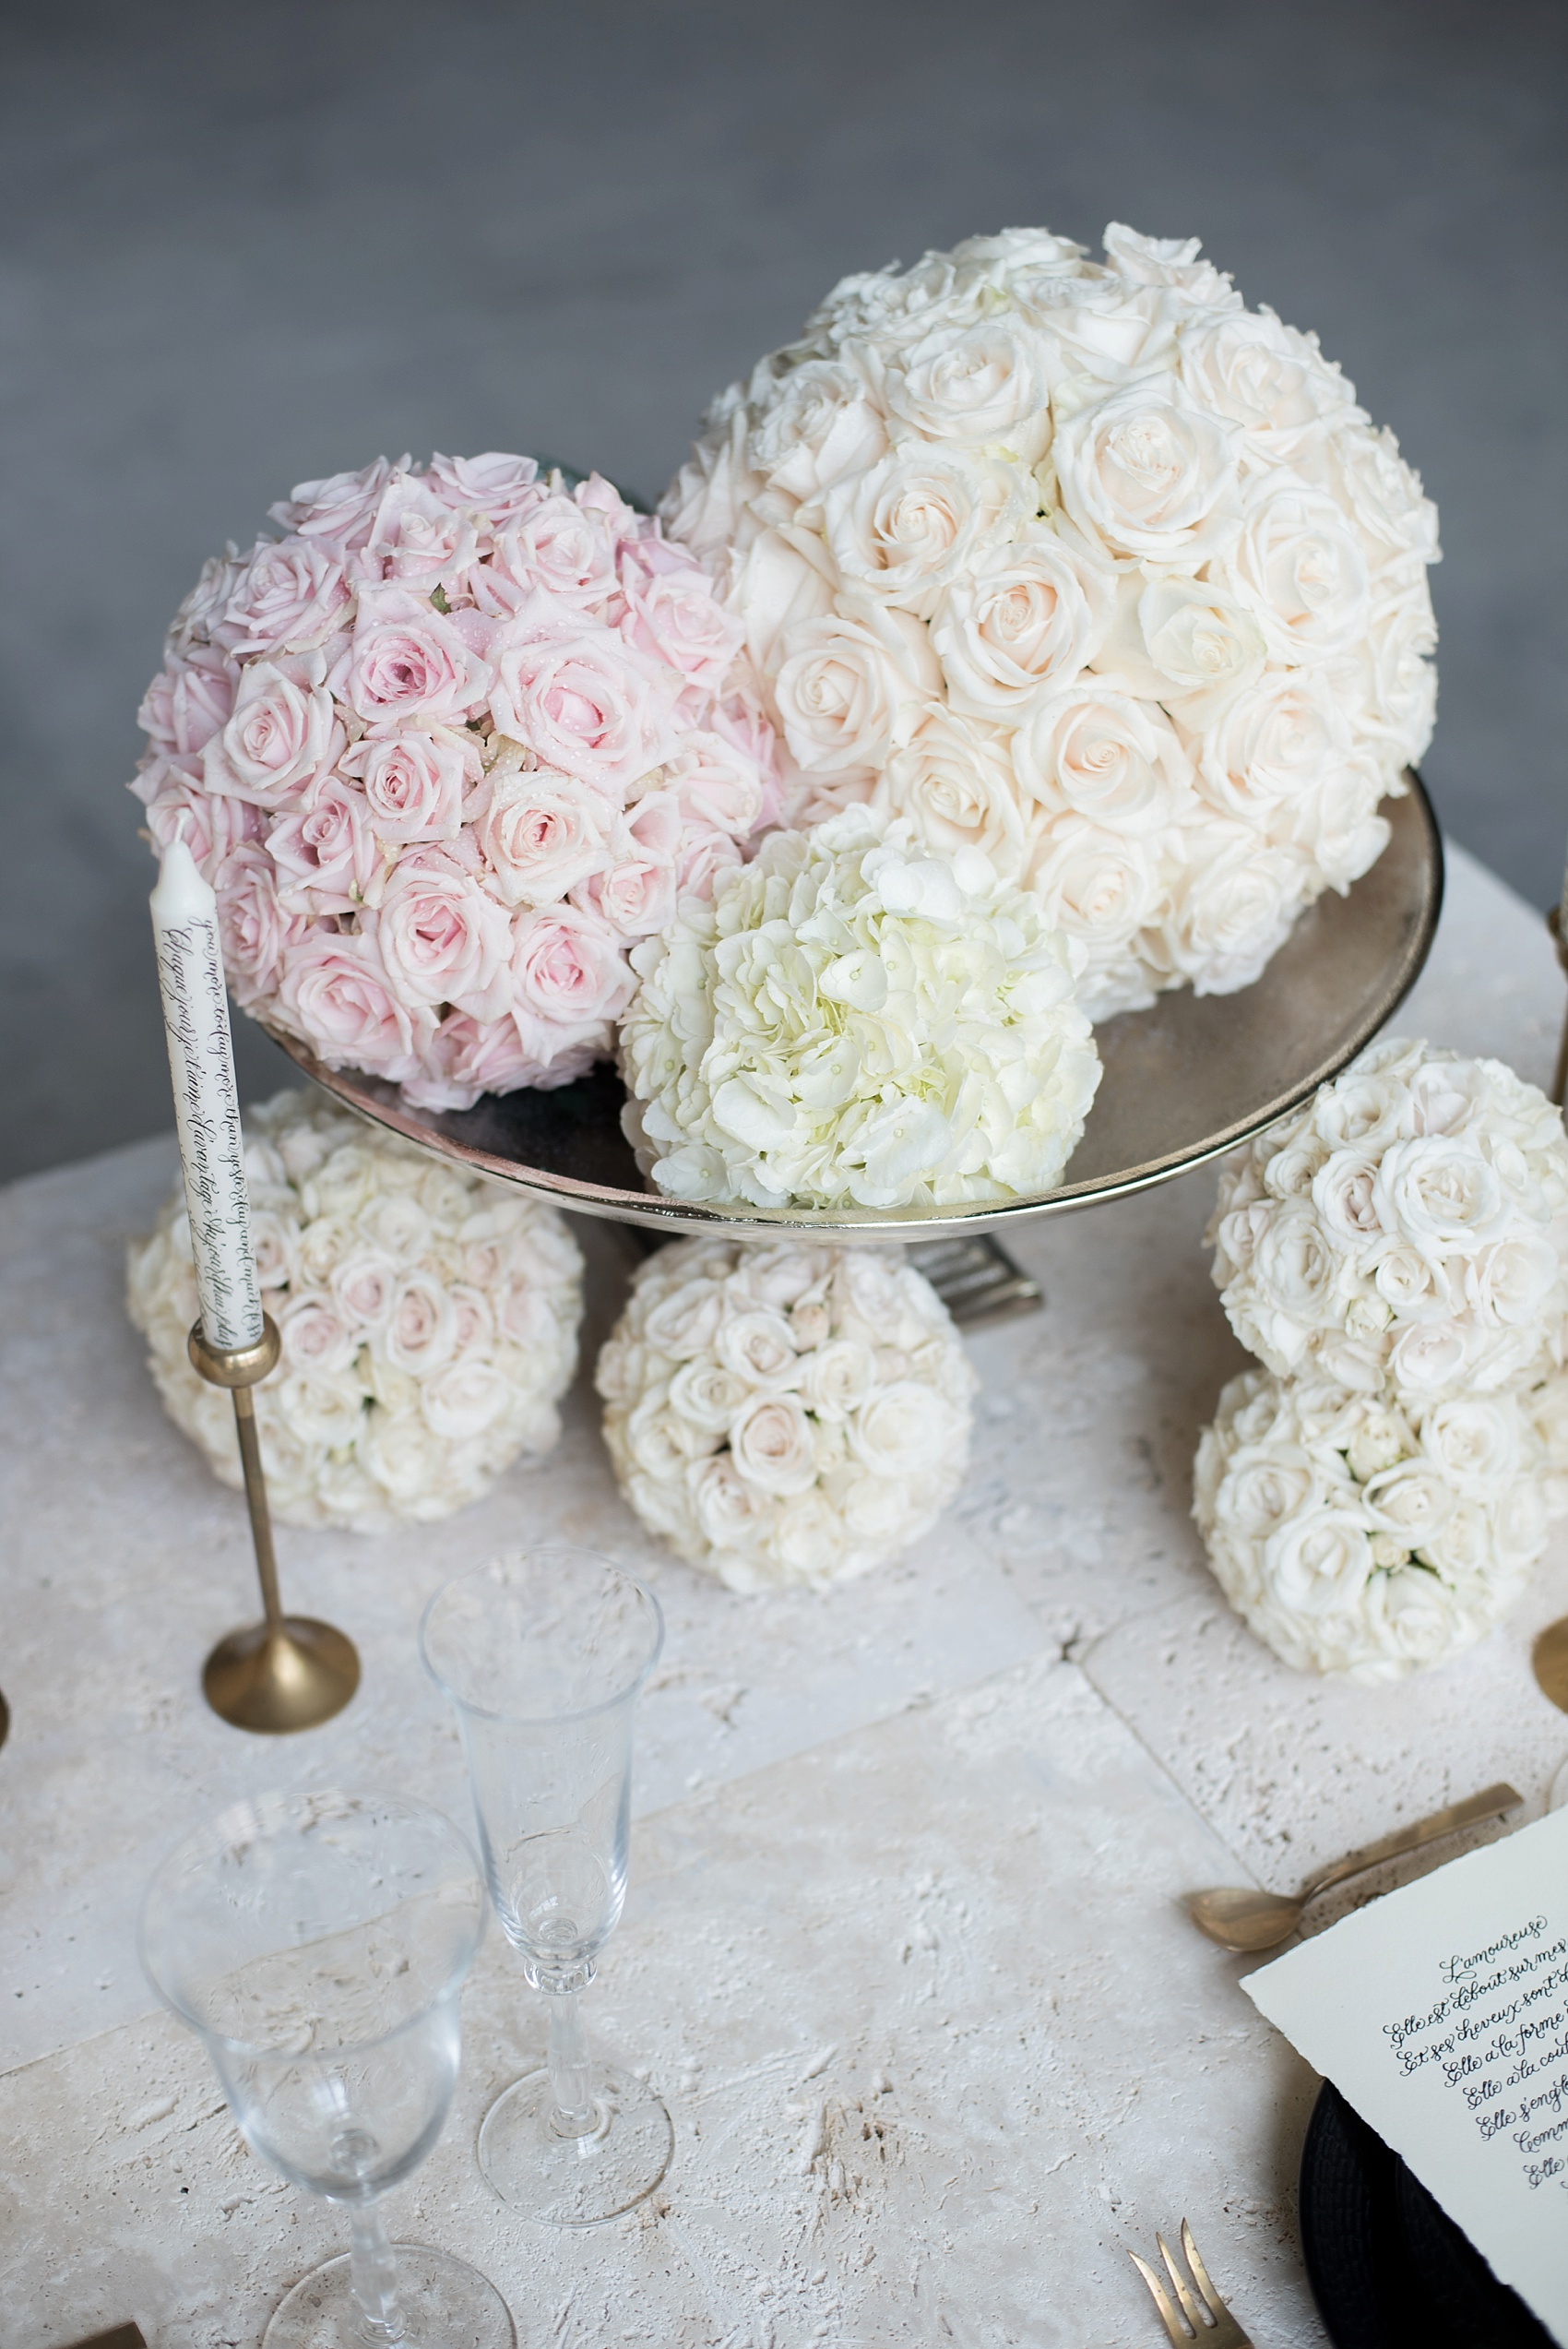 Destination wedding photographer Mikkel Paige captures a glamorous industrial bridal session in Hawaii with Burnett's Boards and Moana Events. White and pink pomander flower spheres adorn the sweetheart table.